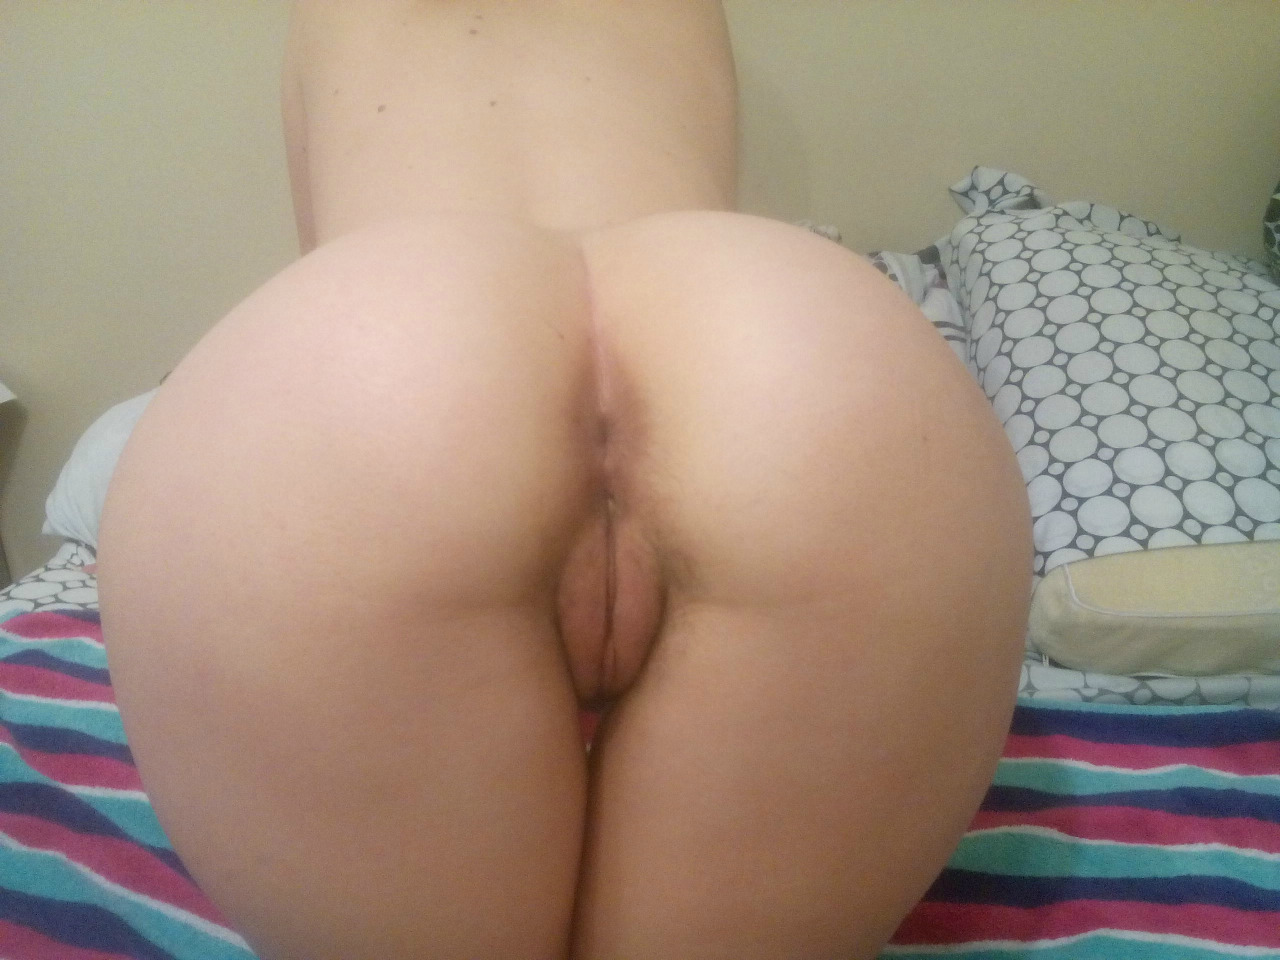 anal video conas fotos